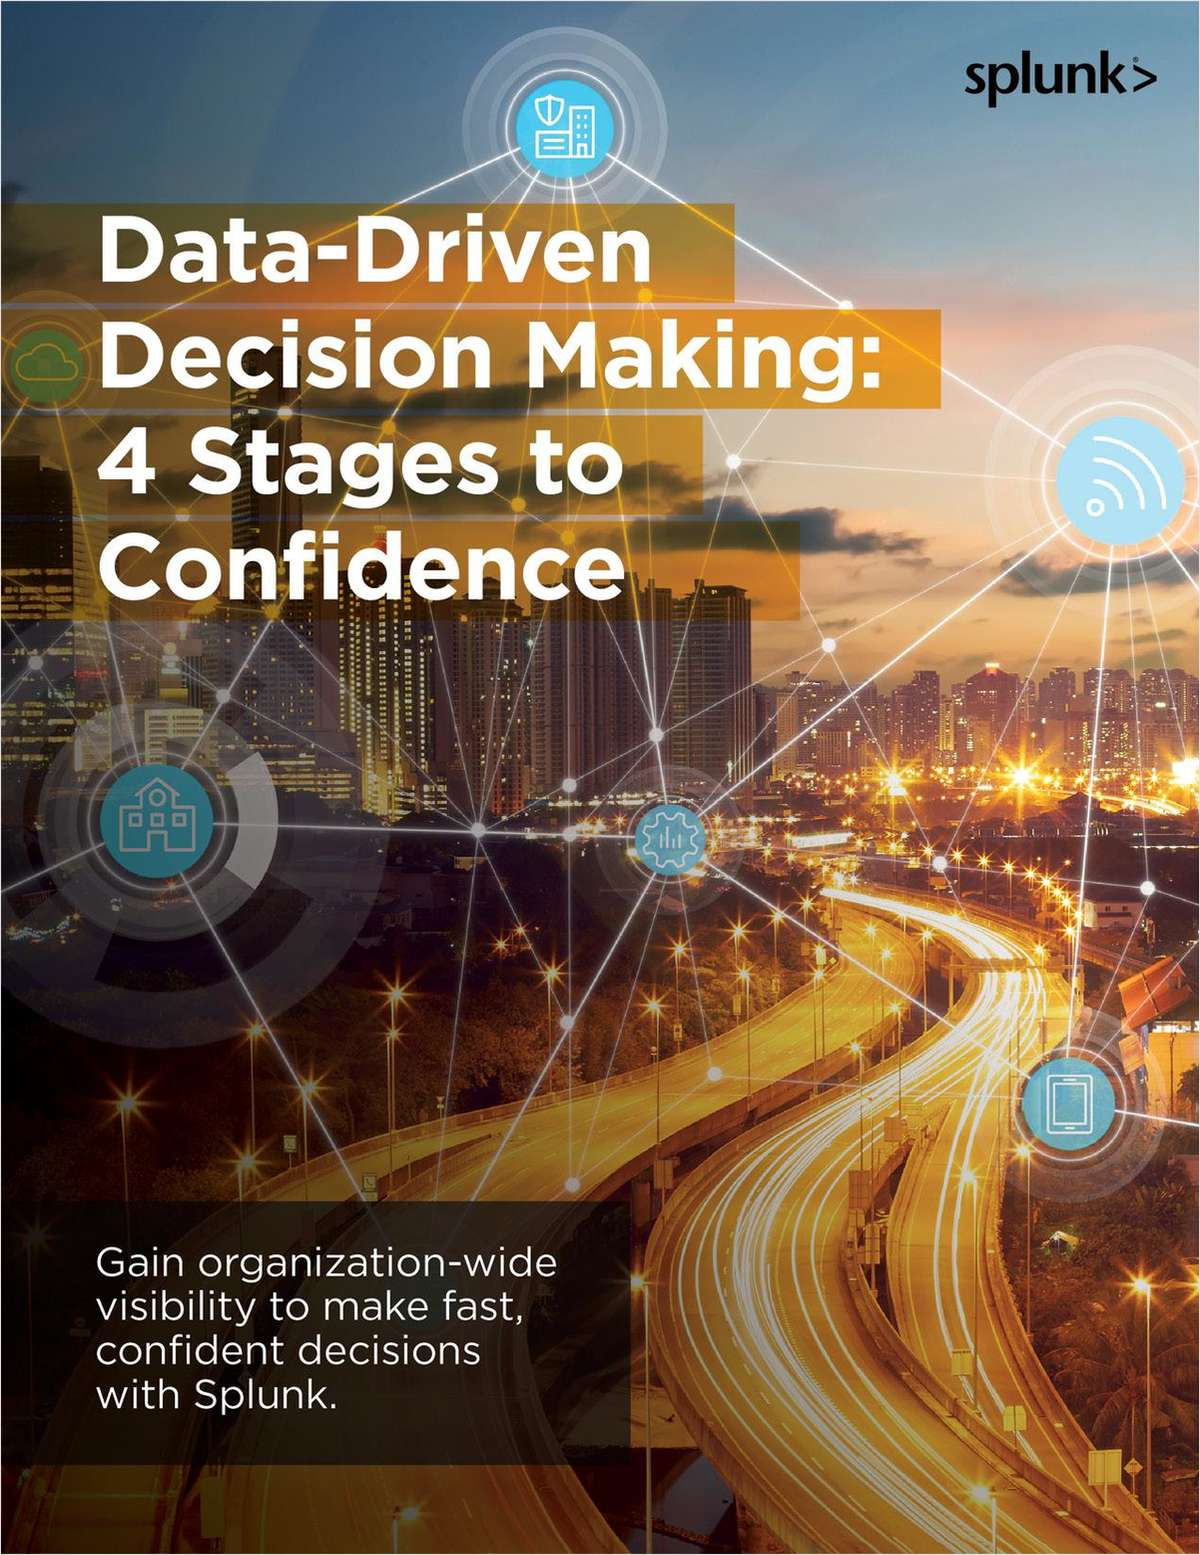 Data-Driven Decision-Making: 4 Stages to Confidence